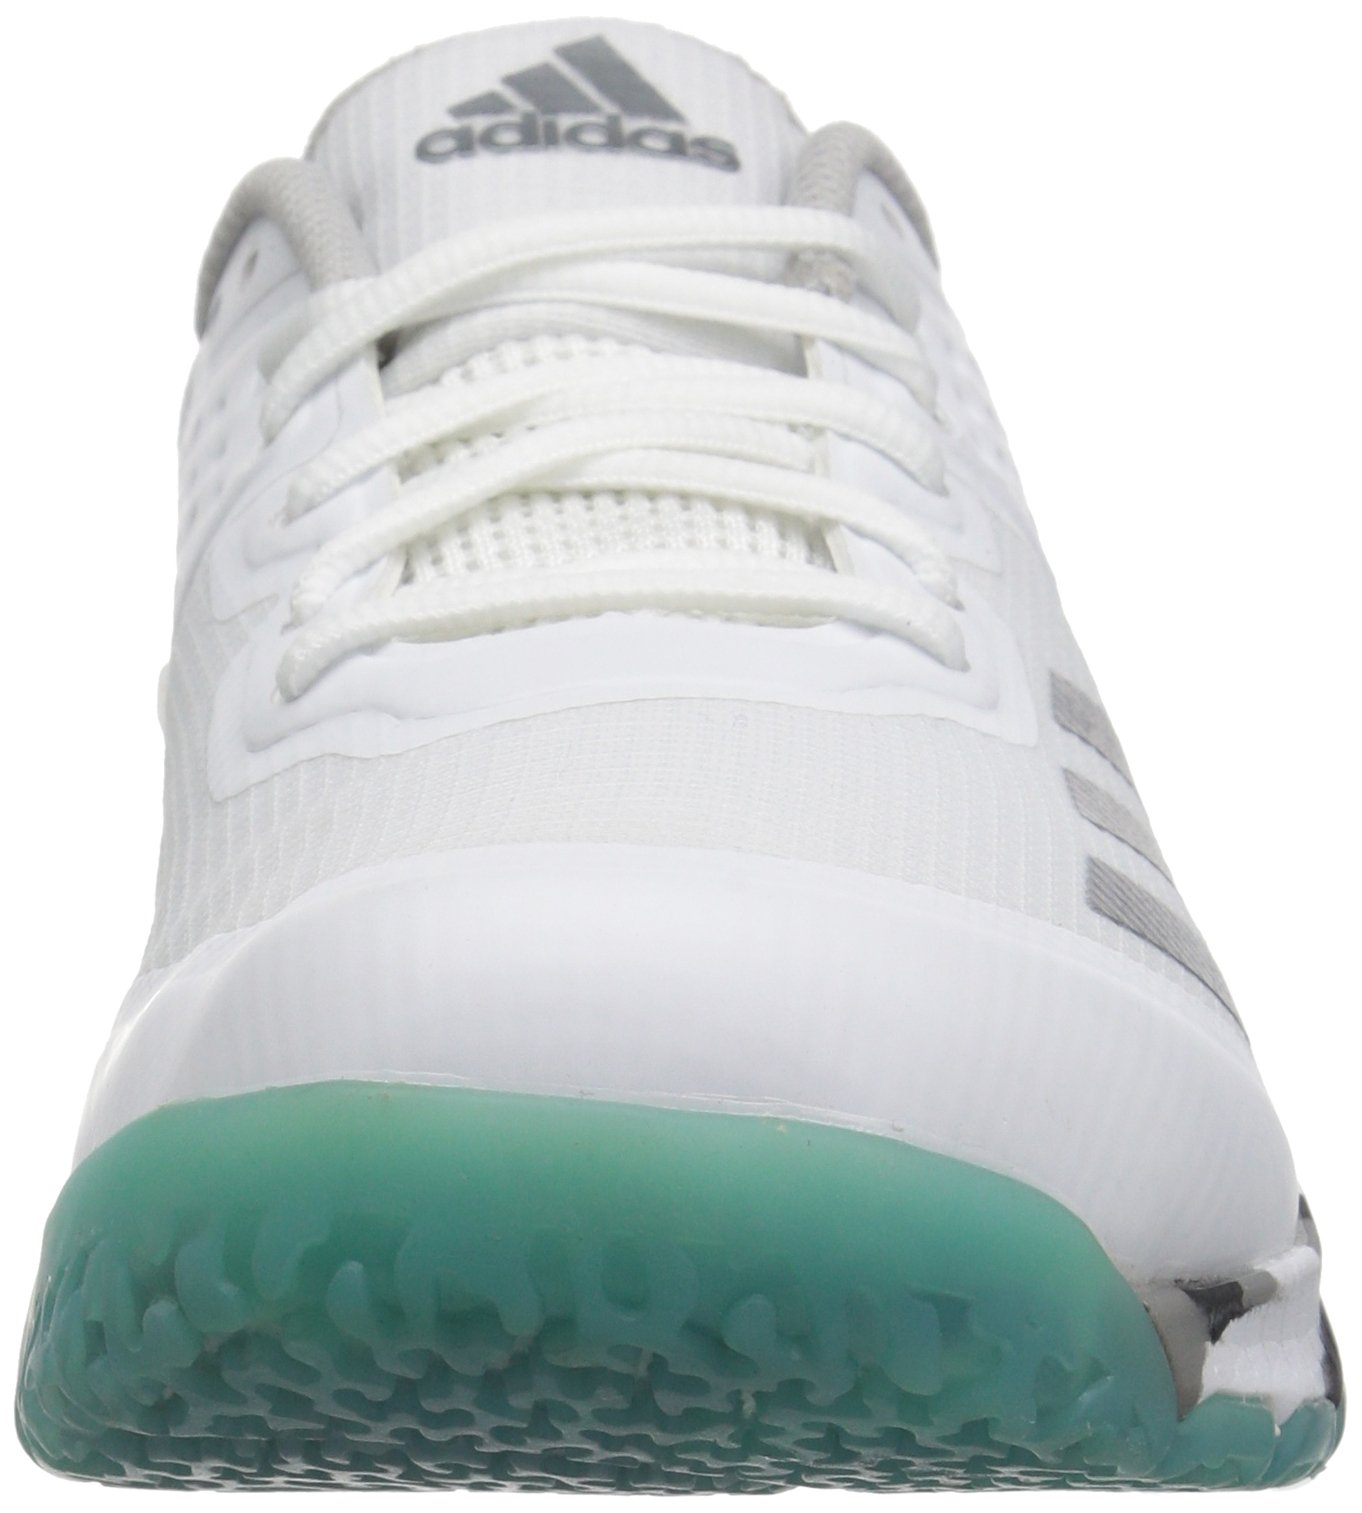 wholesale dealer b1092 0db4a adidas Womens Crazyflight Bounce W Volleyball-Shoes, Mystery